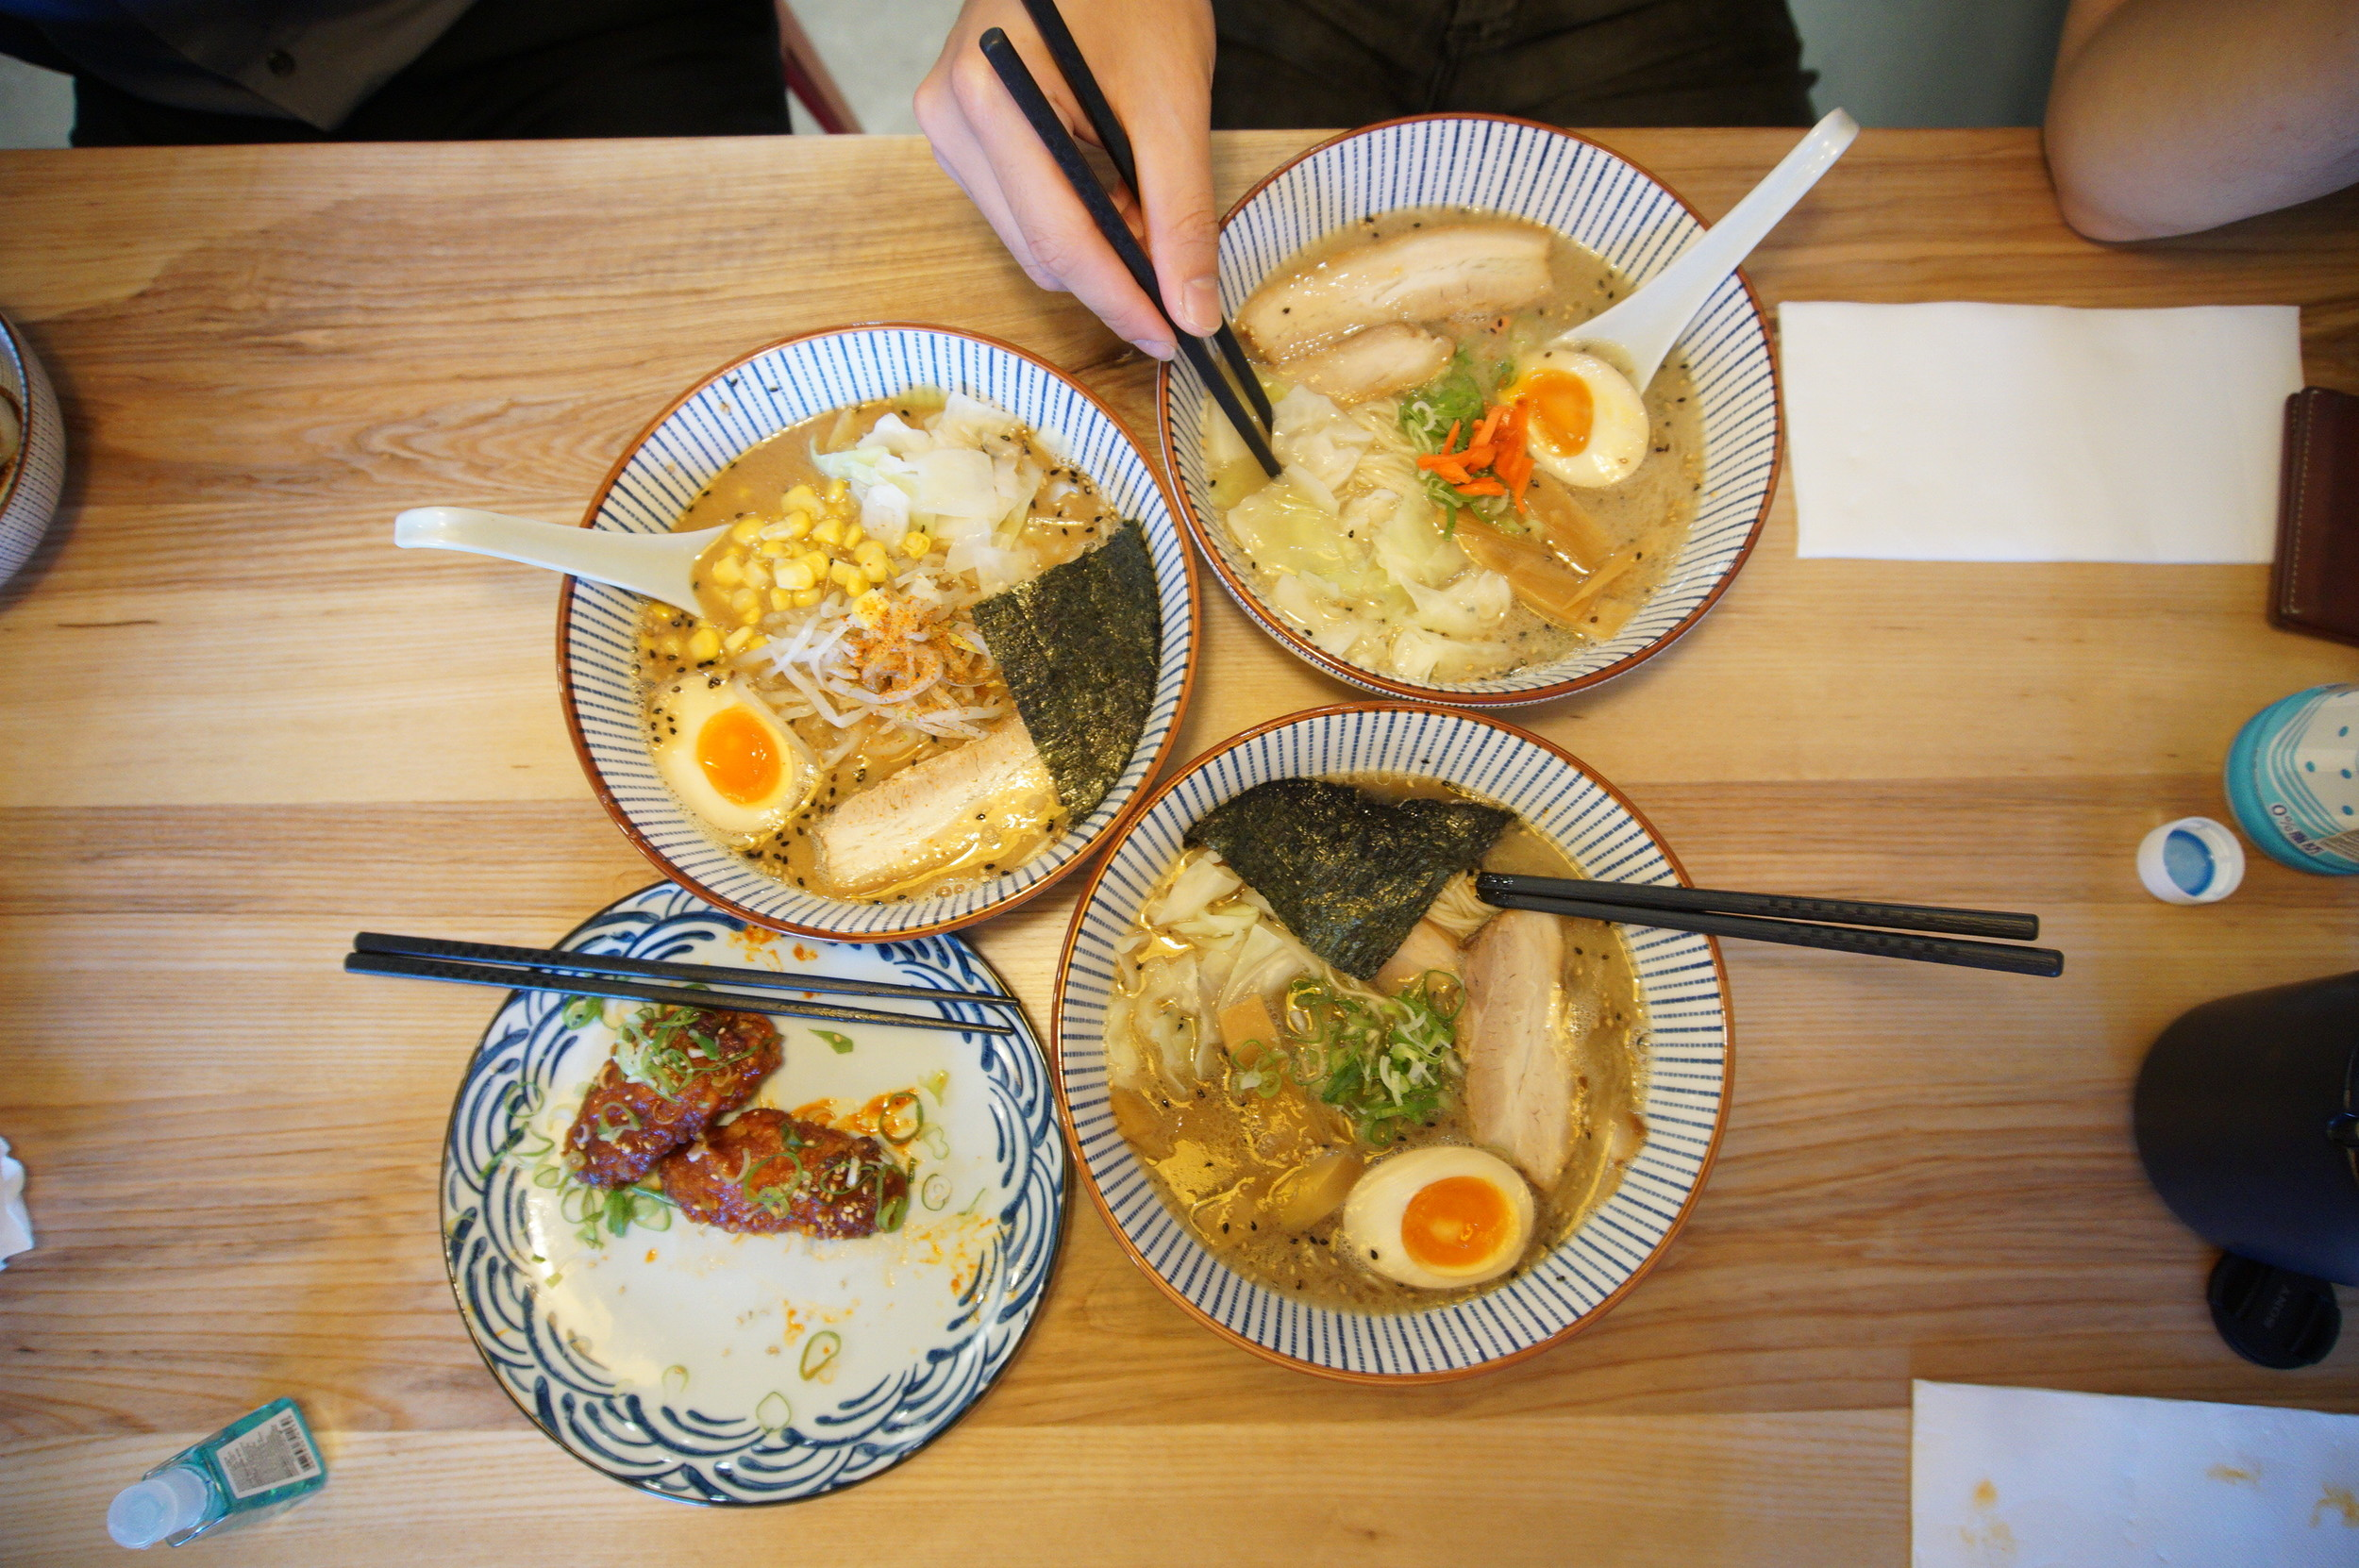 Nomstar Feast - Top L-R: Miso ramen, Shio ramen, Shoyu ramen, two pieces of chicken wings